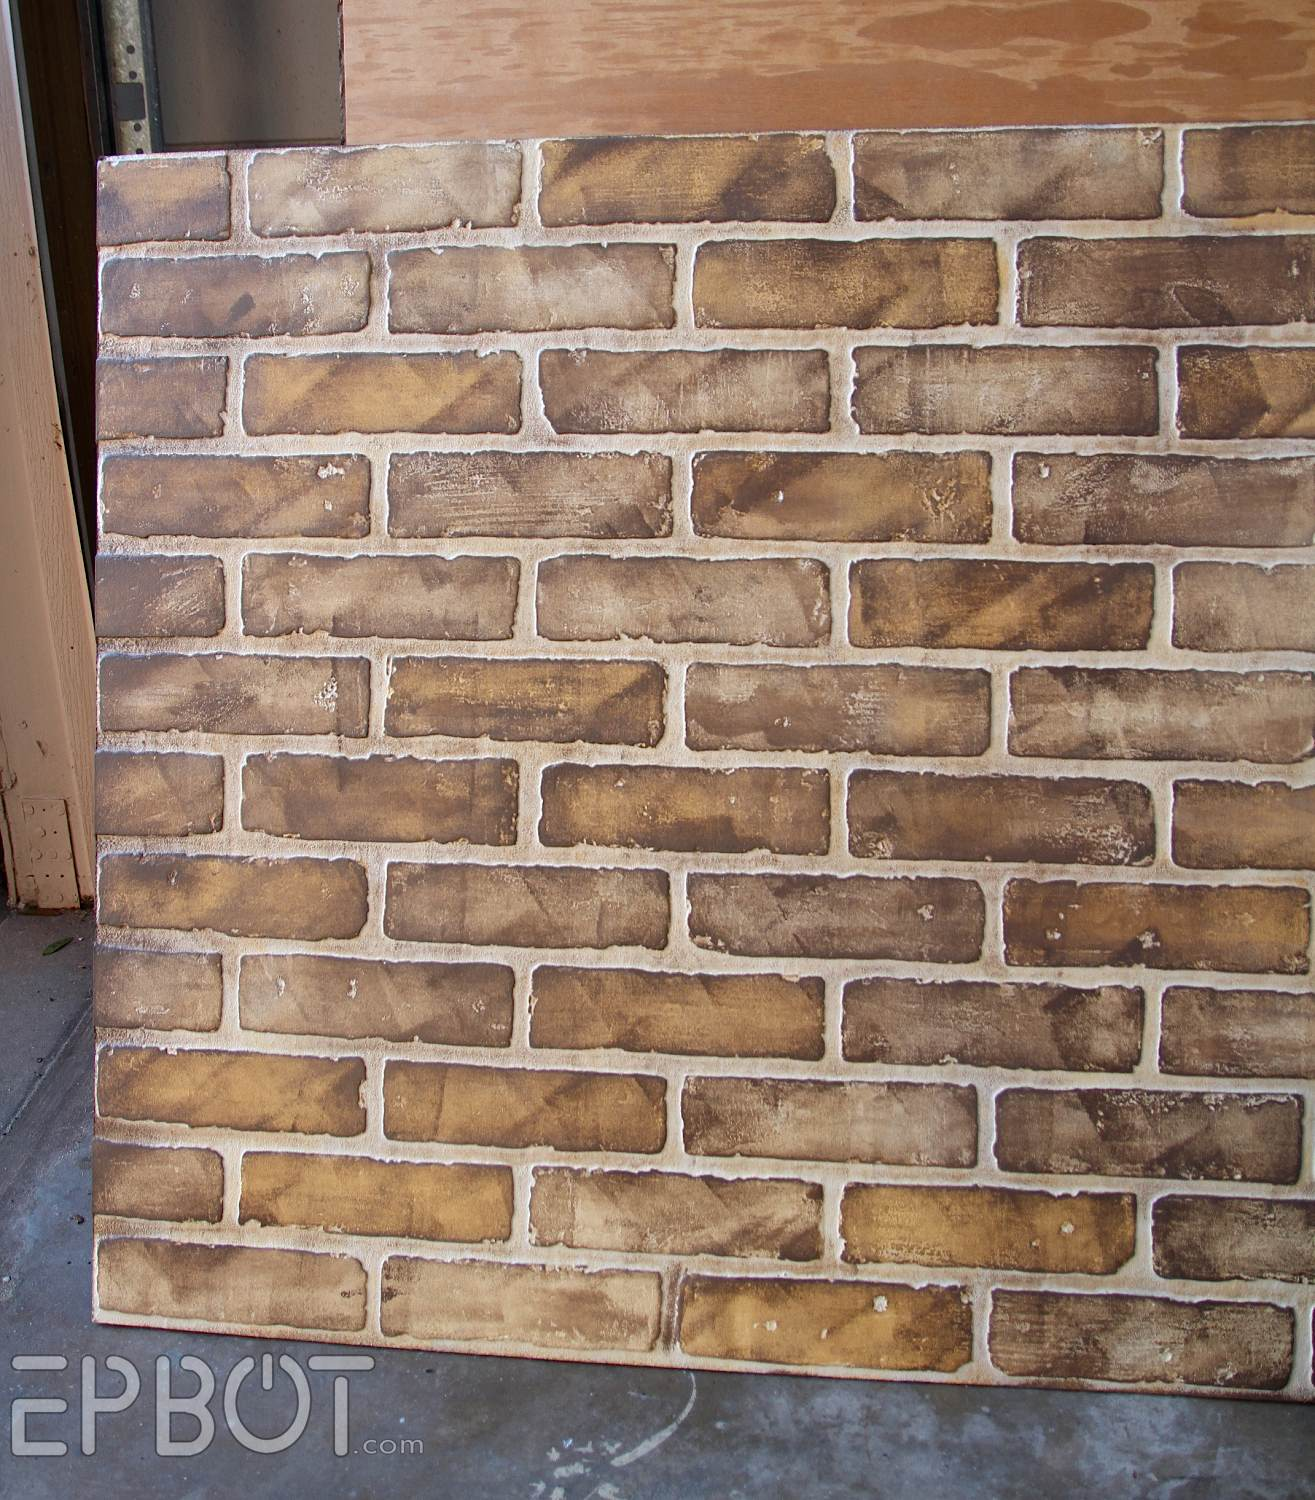 Epbot diy faux brick painting tutorial for Bricks painting design